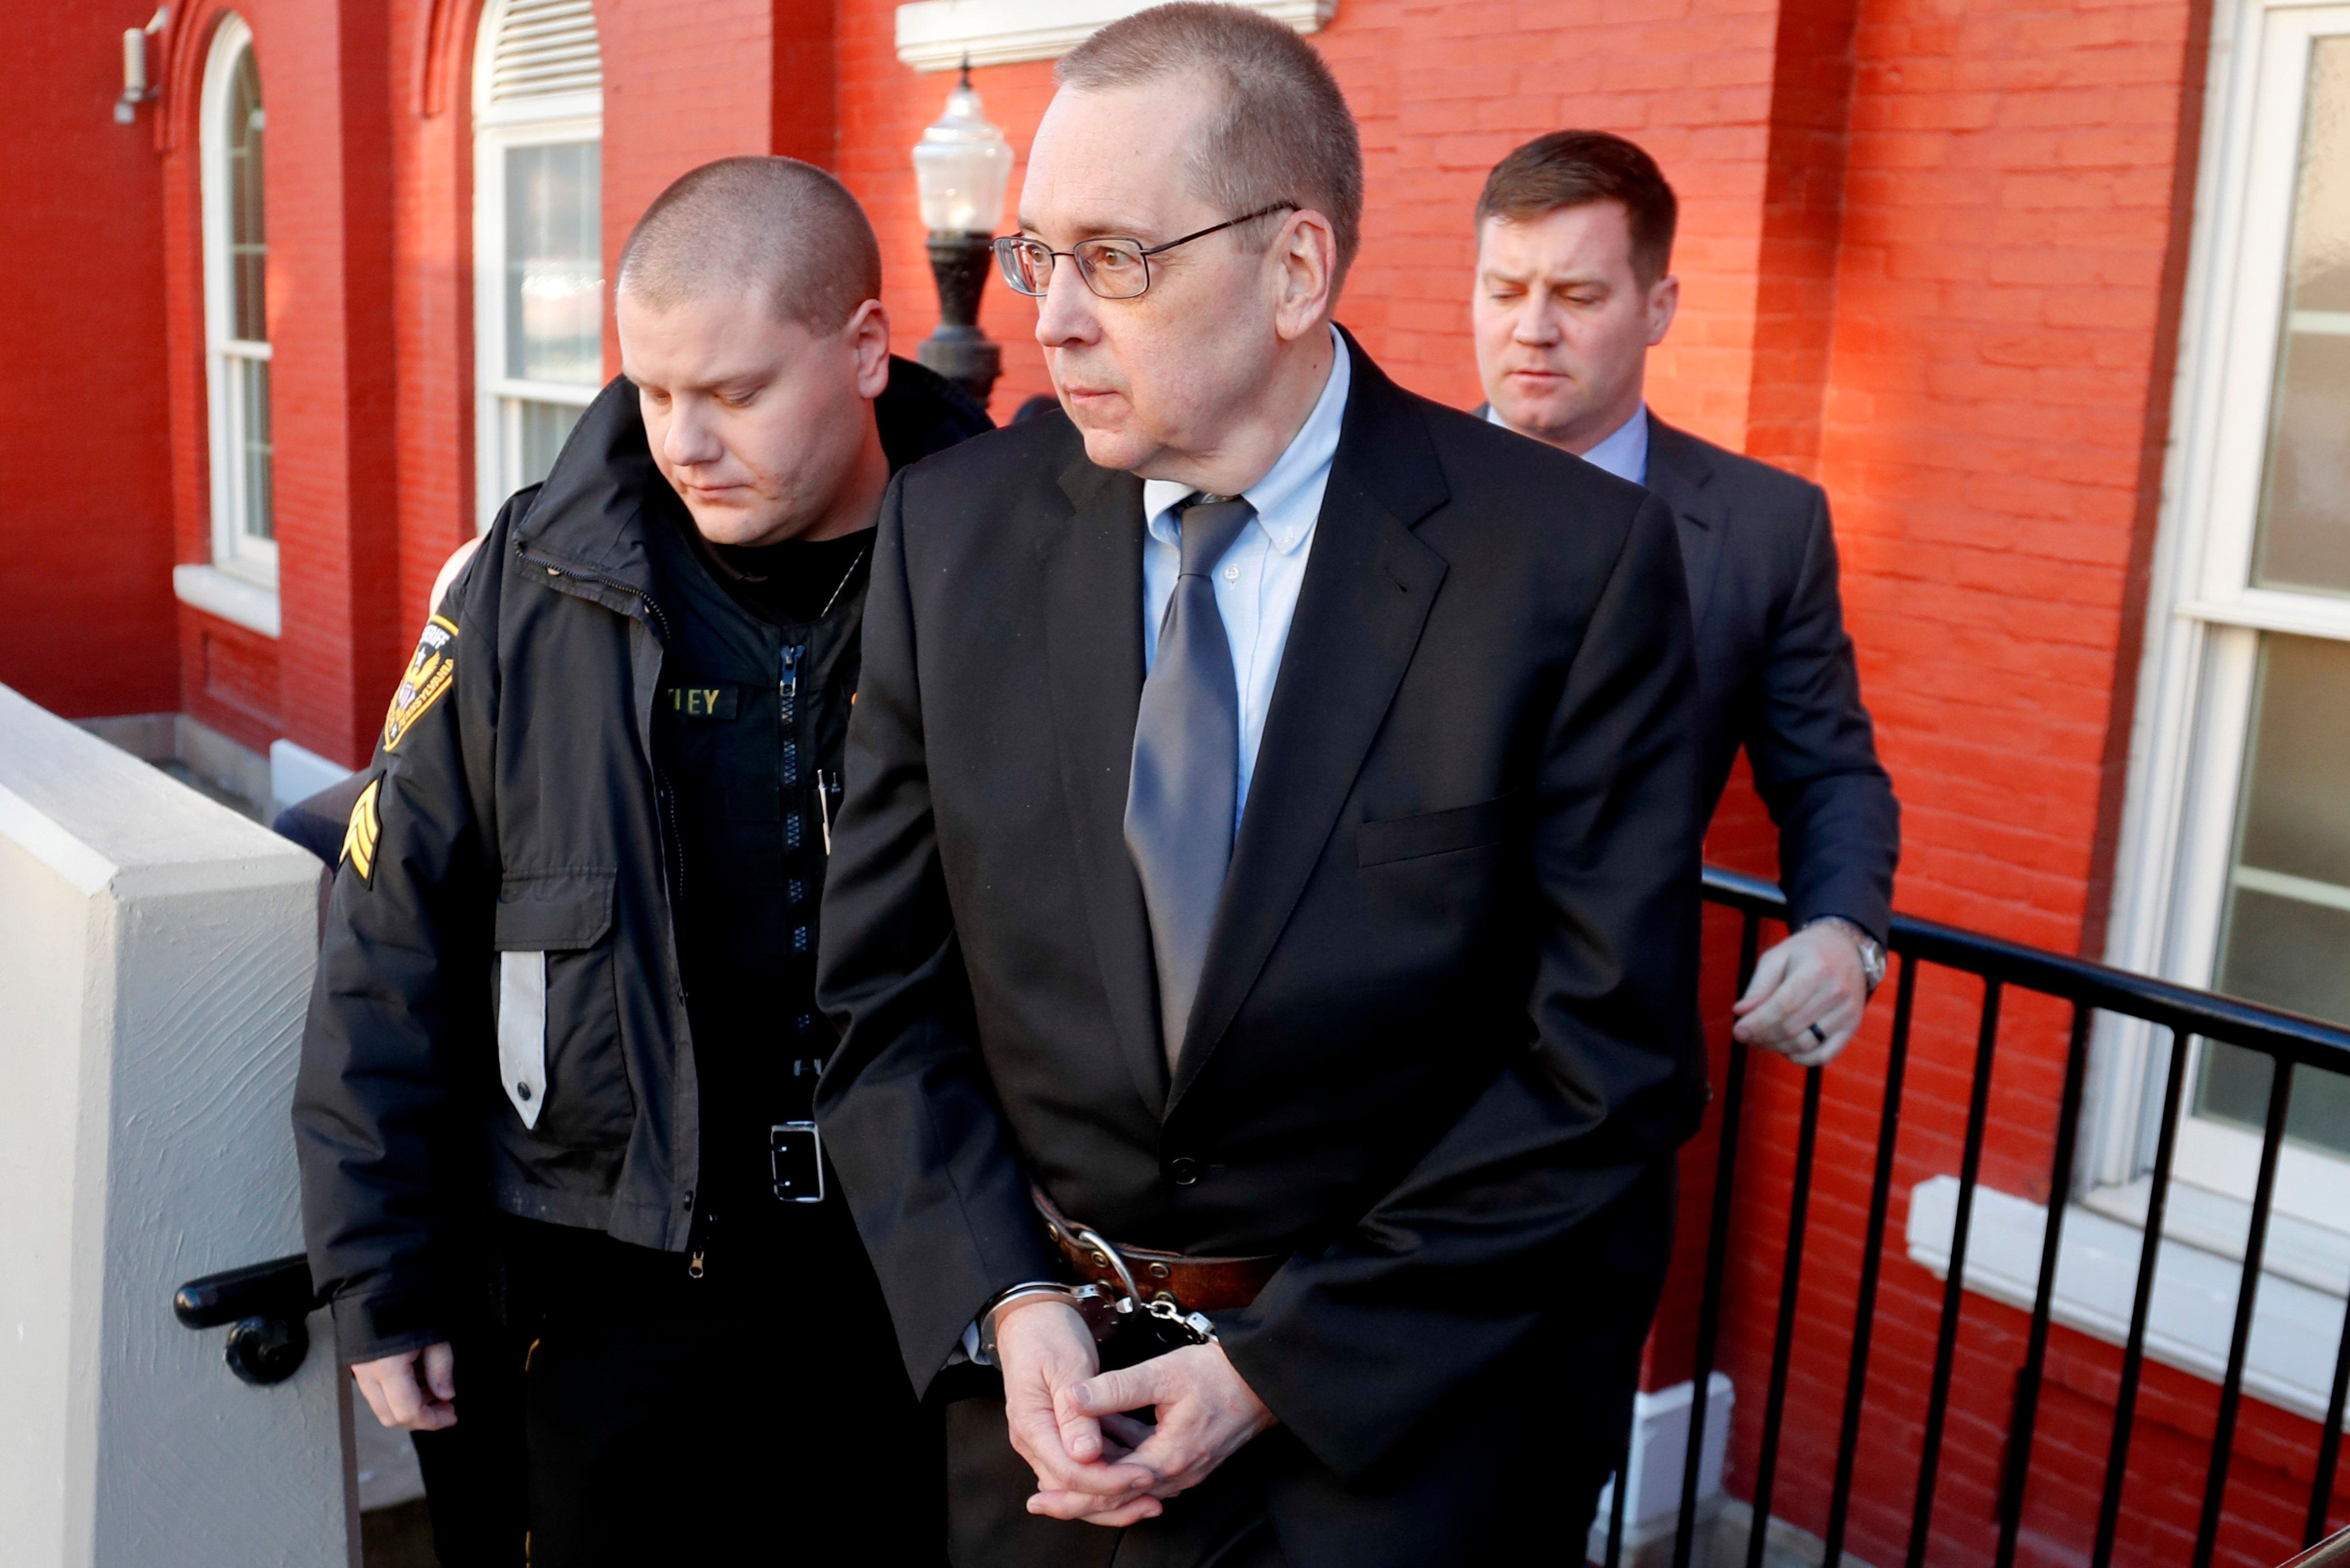 David Lee Poulson, center, a Roman Catholic priest who pleaded guilty to sexually abusing two boys, is taken away from court